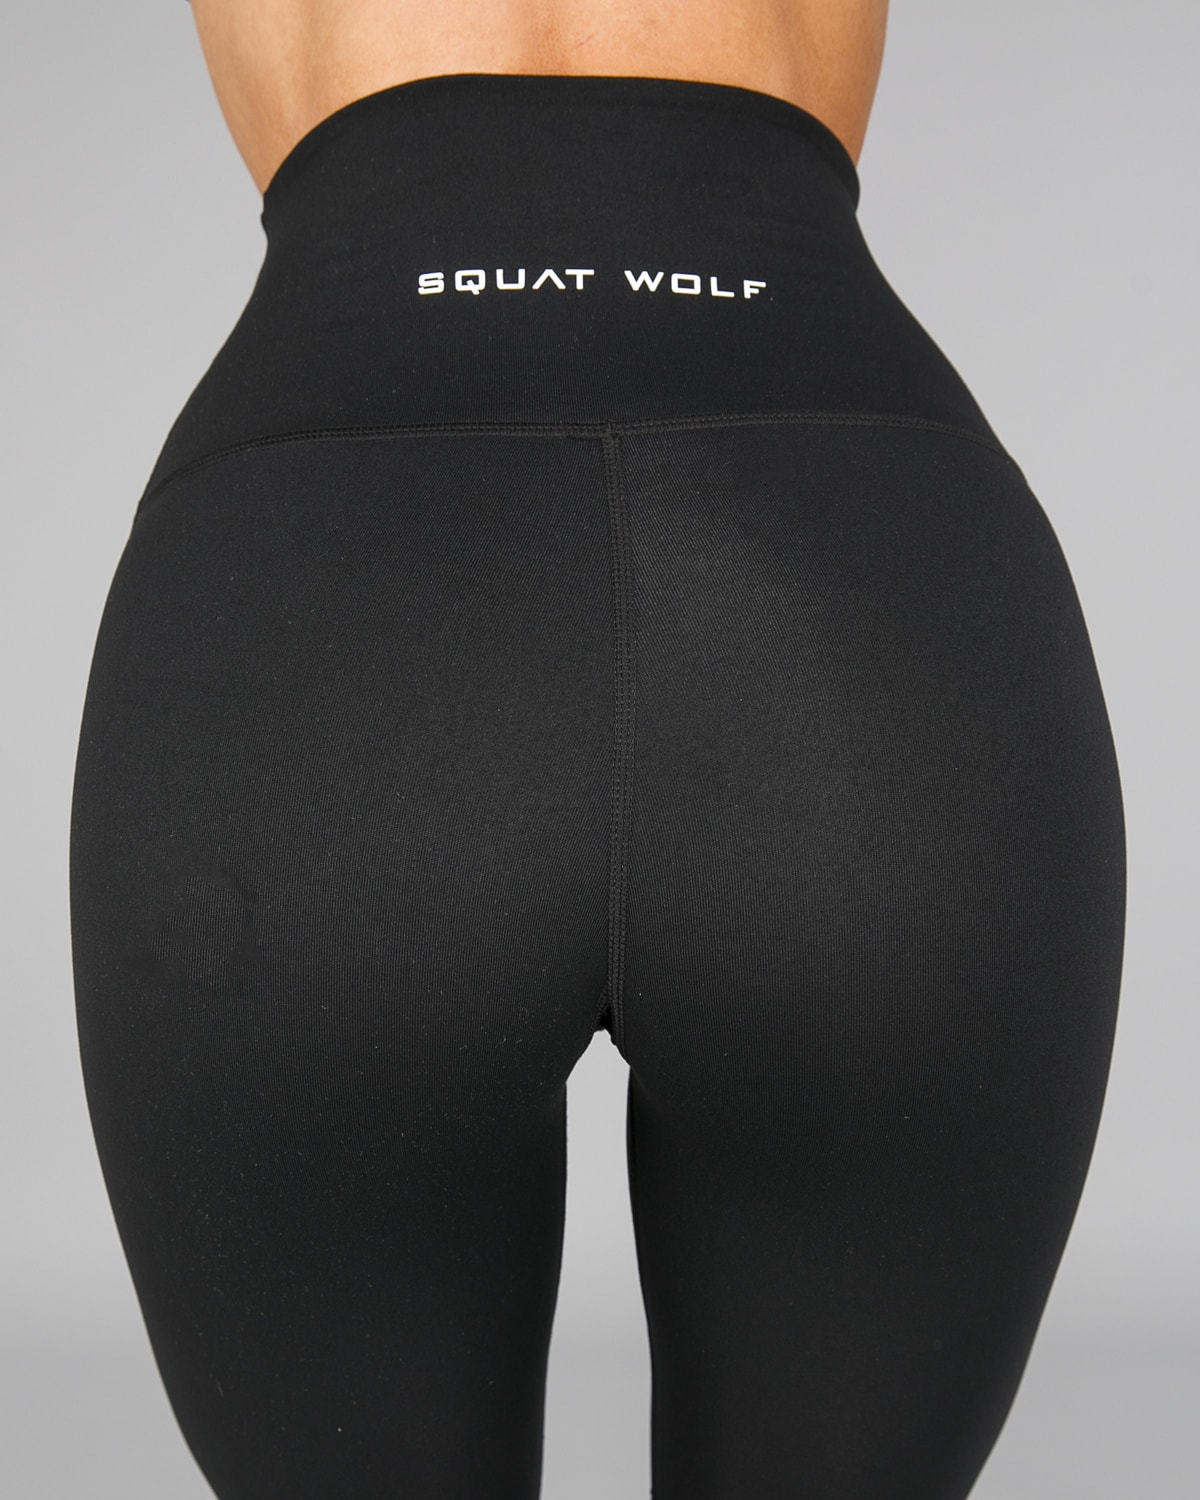 Squat Wolf – Hera Leggings – Black9